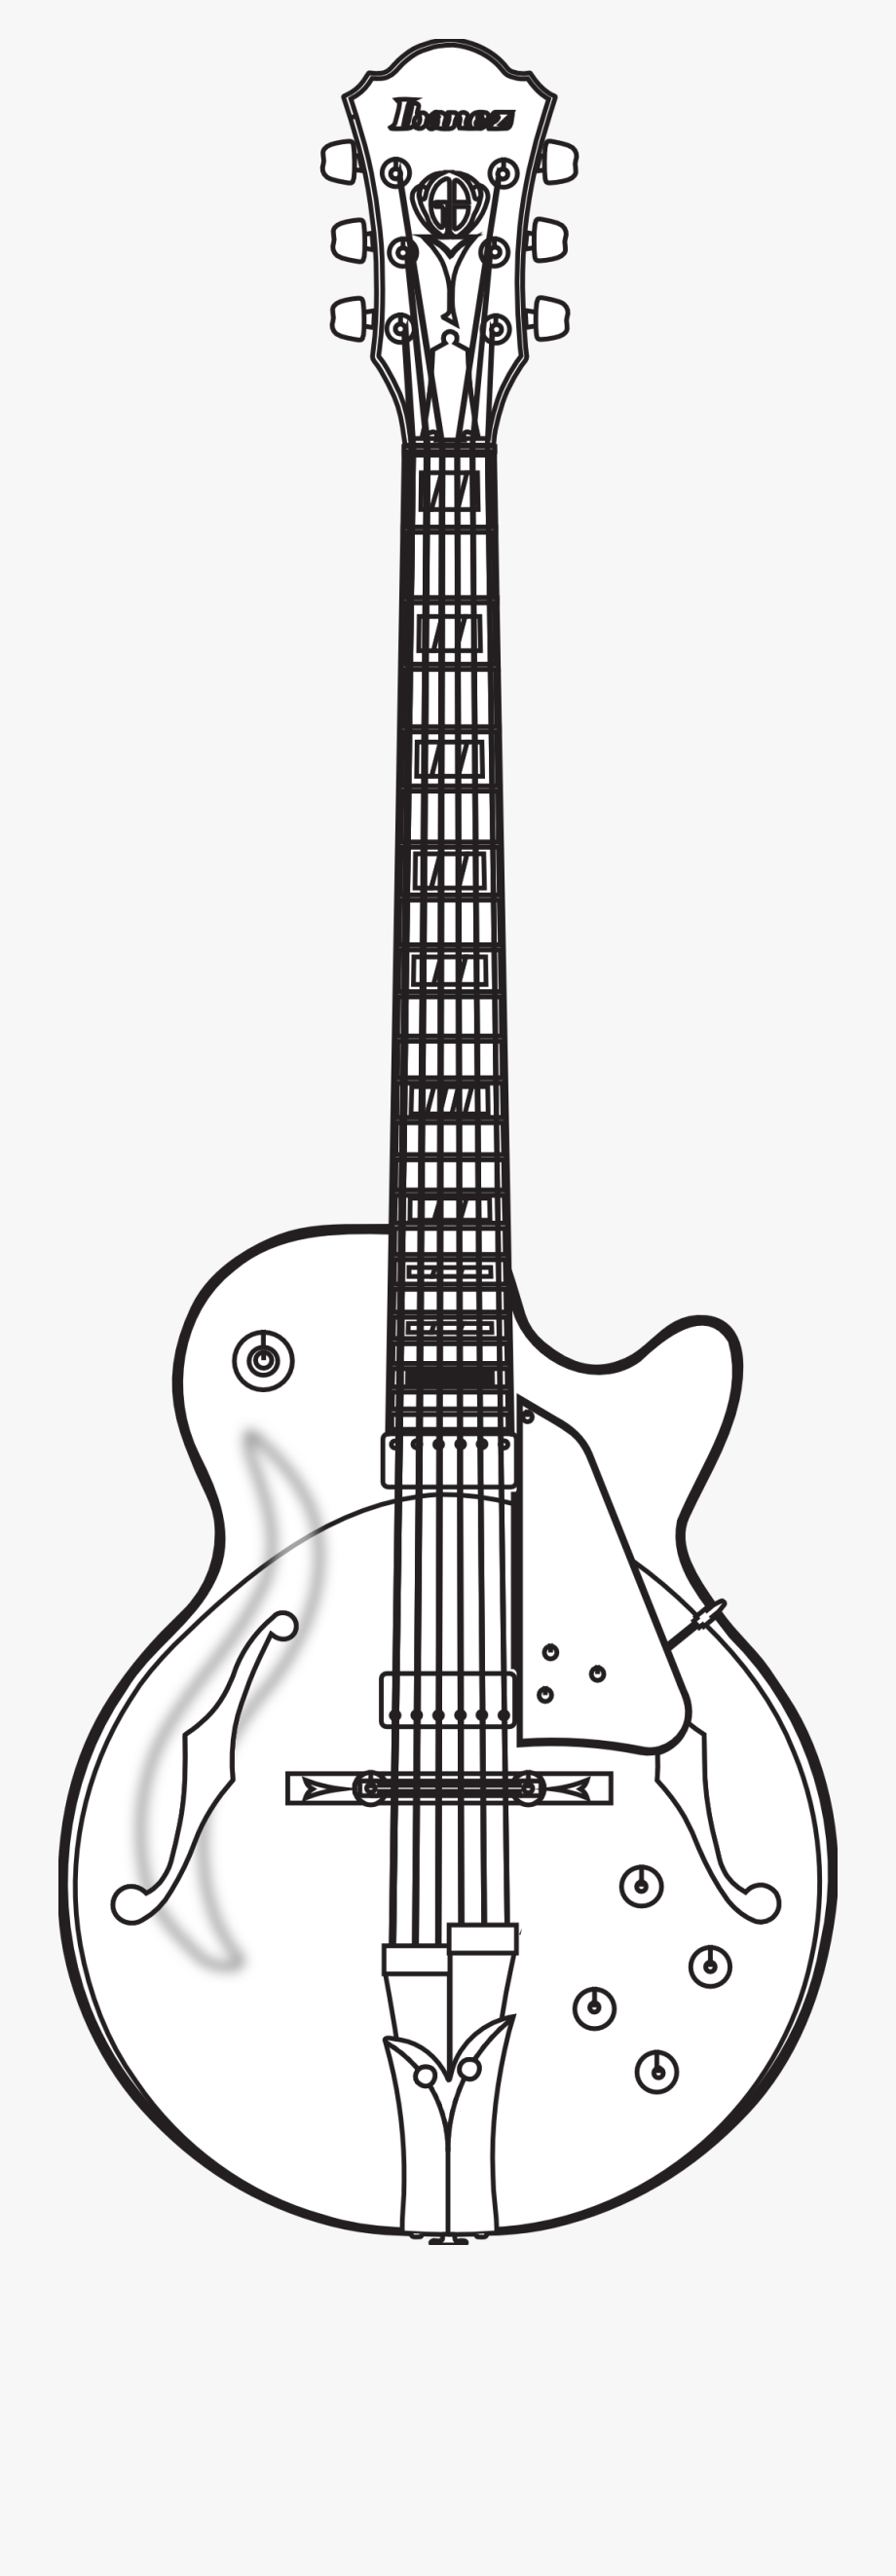 Guitar Black And White Guitar Clipart Black And White.